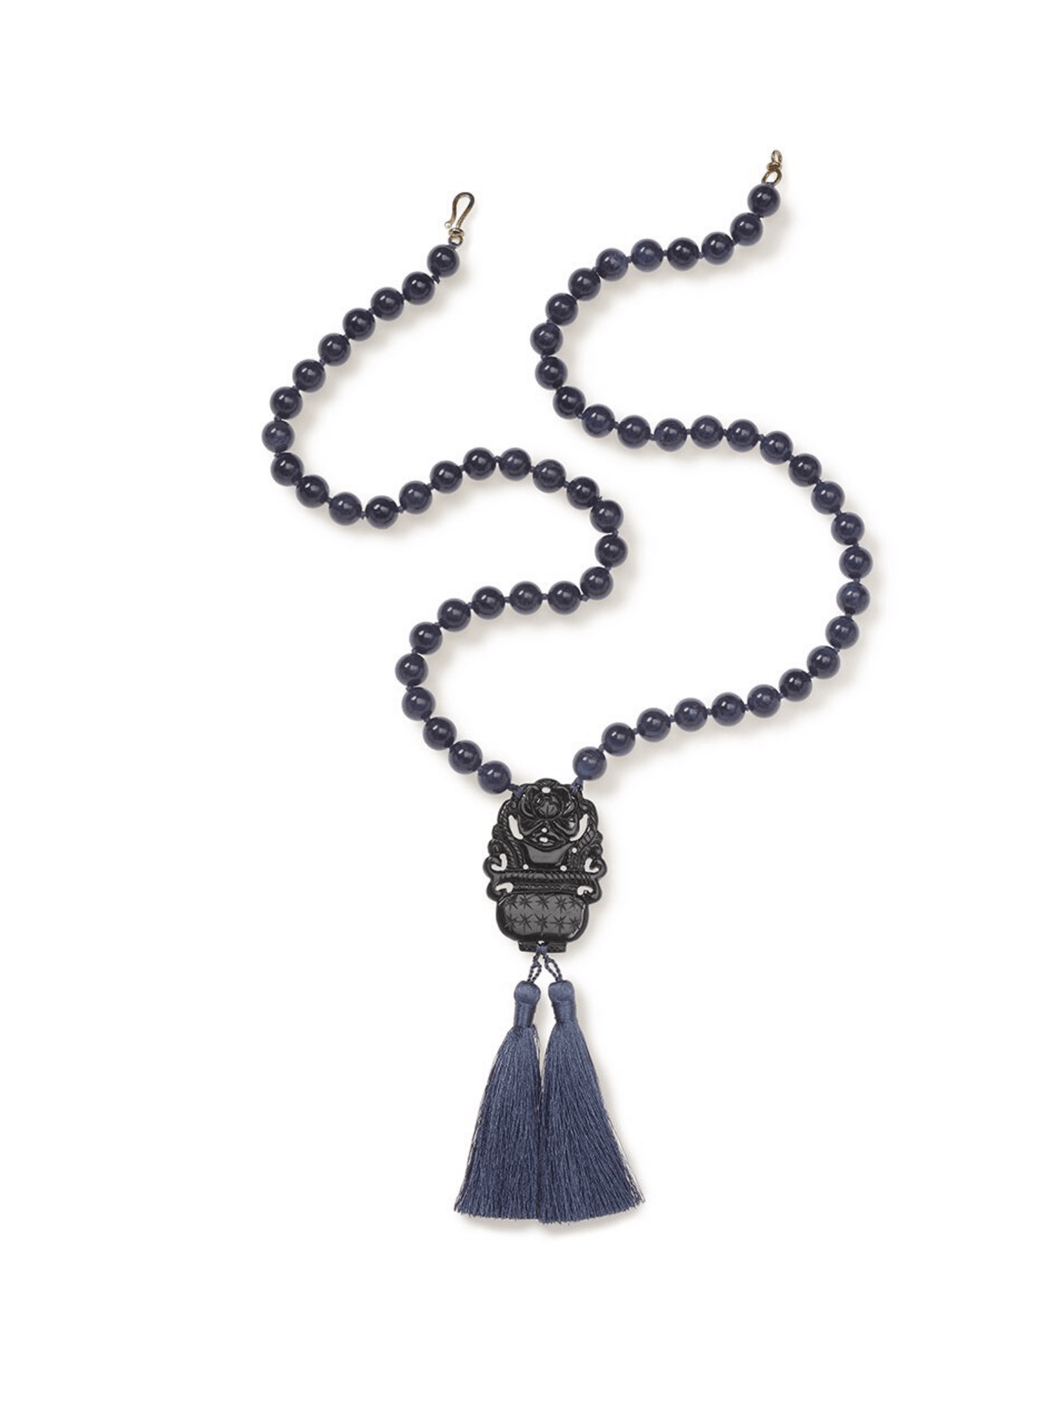 Deep Blue Dumortierite Necklace with Onyx Pendant and Blue Tassels